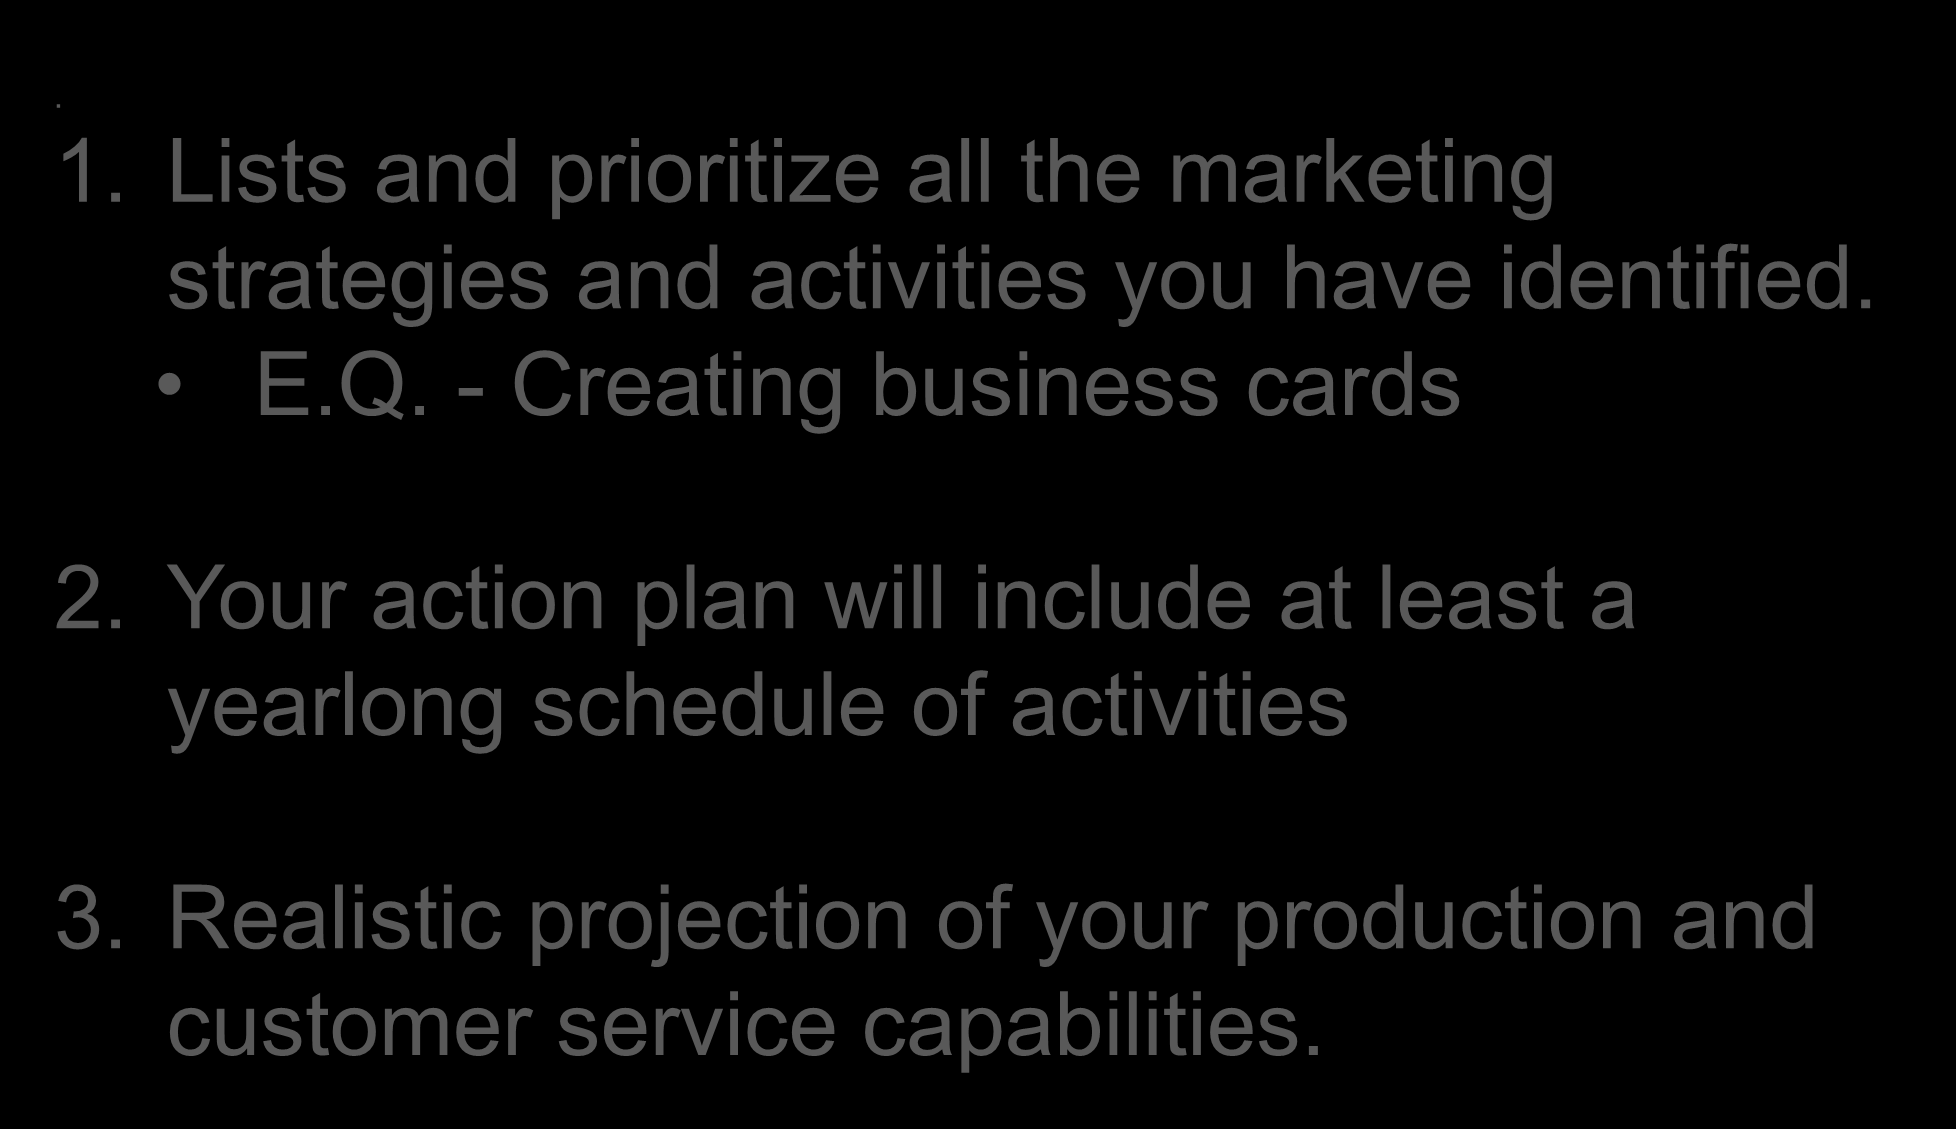 Action Plan. 1. Lists and prioritize all the marketing strategies and activities you have identified. E.Q. - Creating business cards 2.